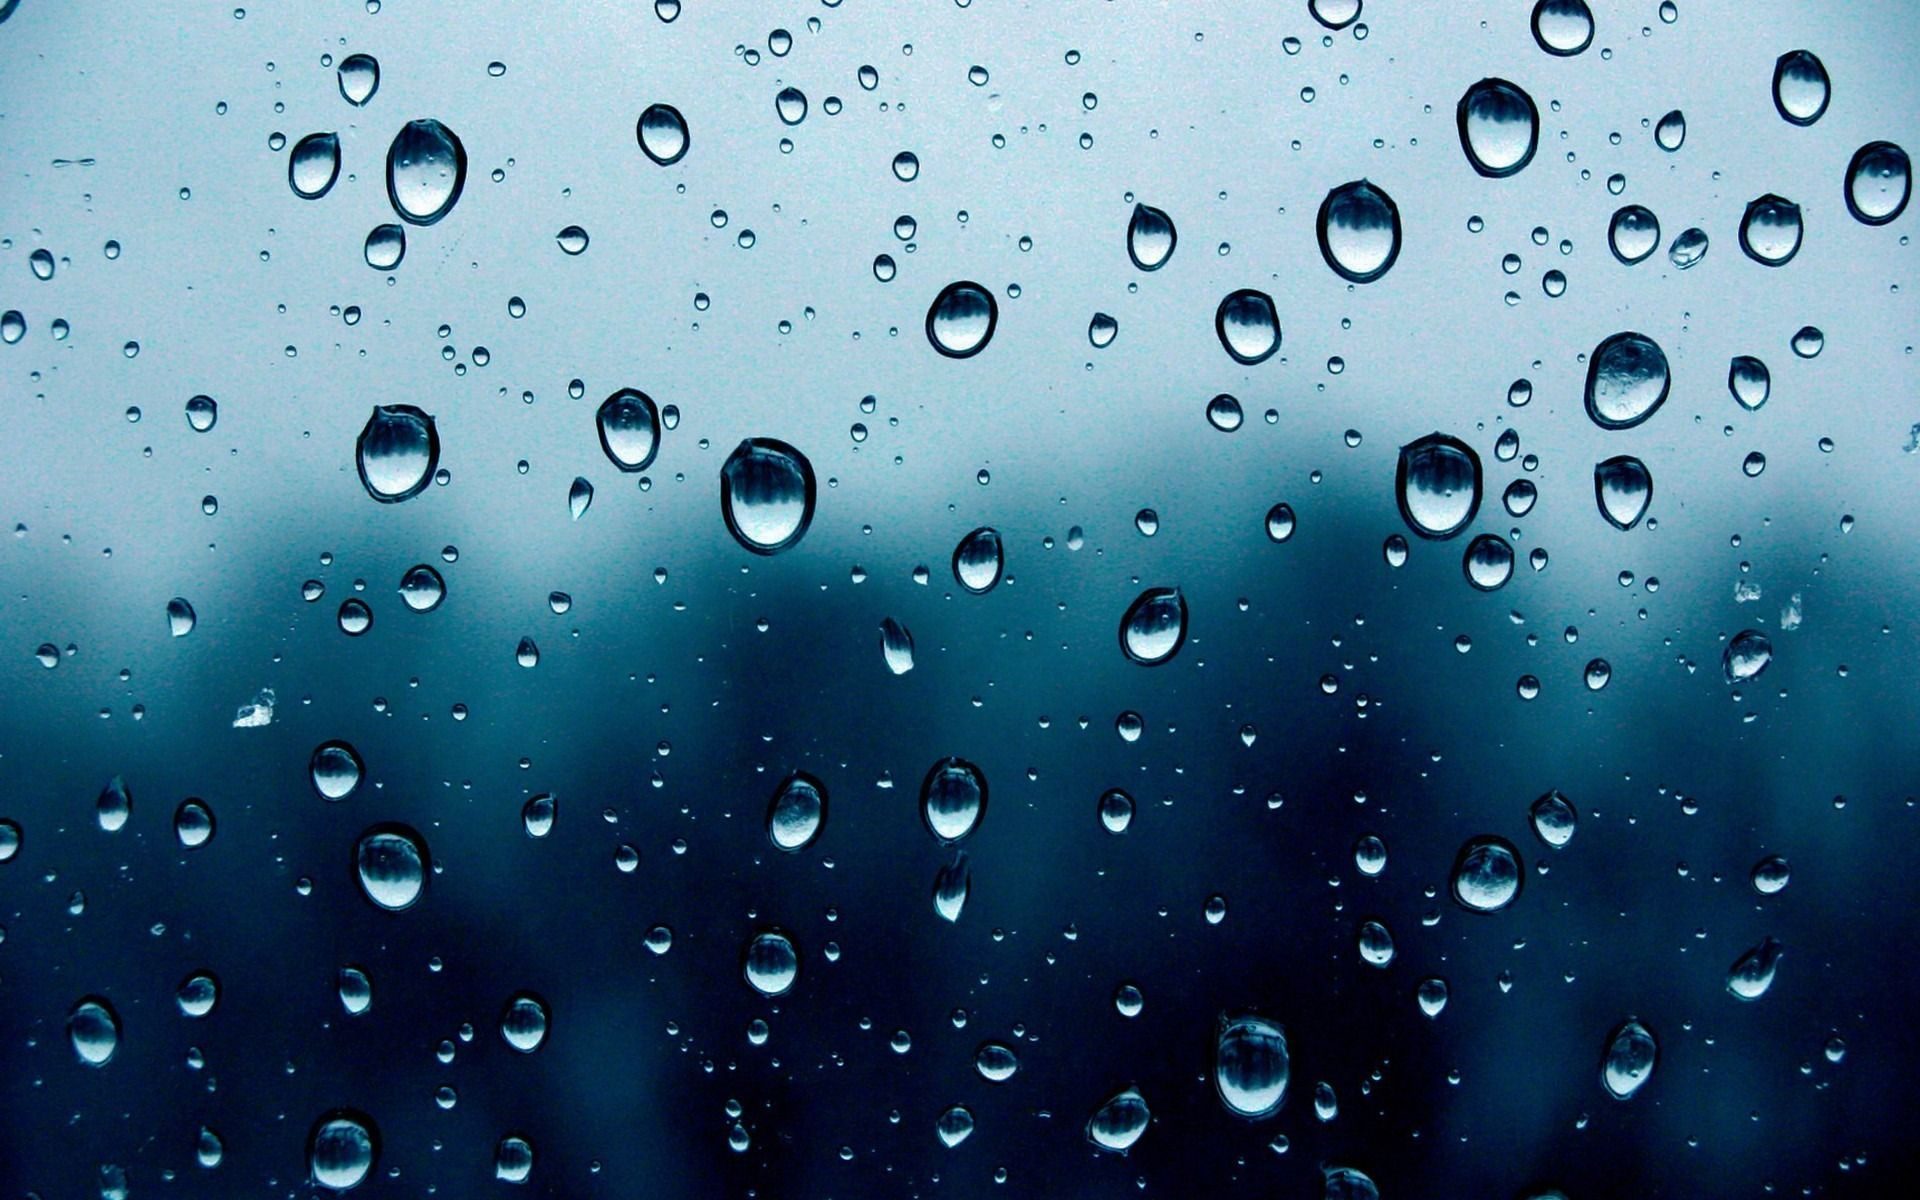 Raindrop Wallpaper 03 Background Images Raindrops 1920x1200 Download Hd Wallpaper Wallpapertip